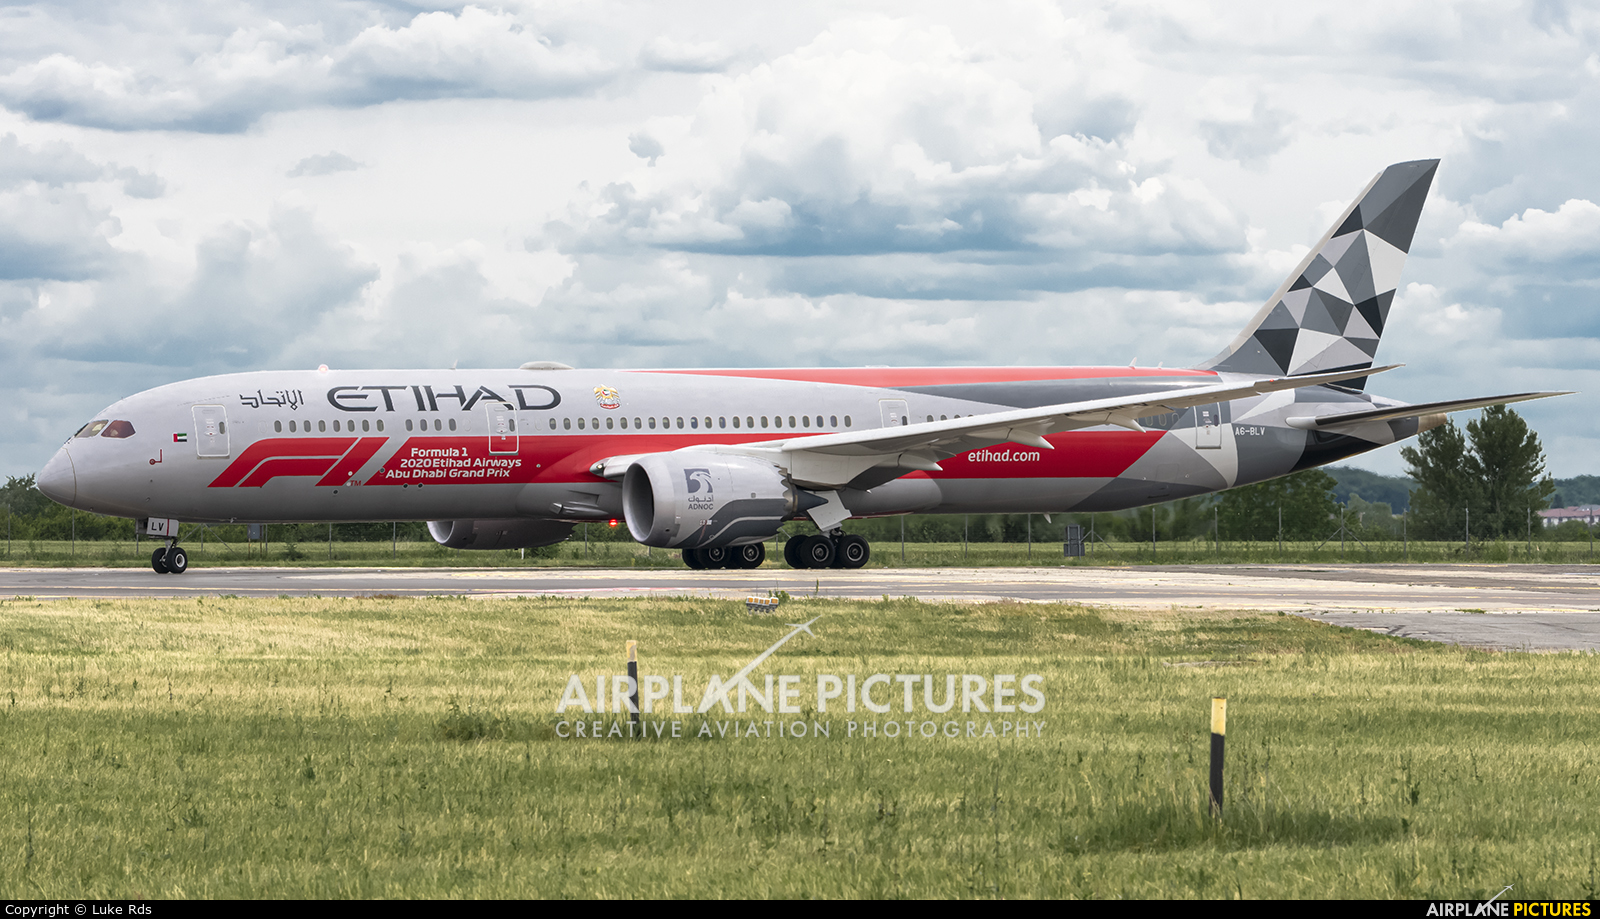 Etihad Airways A6-BLV aircraft at Bucharest - Henri Coandă